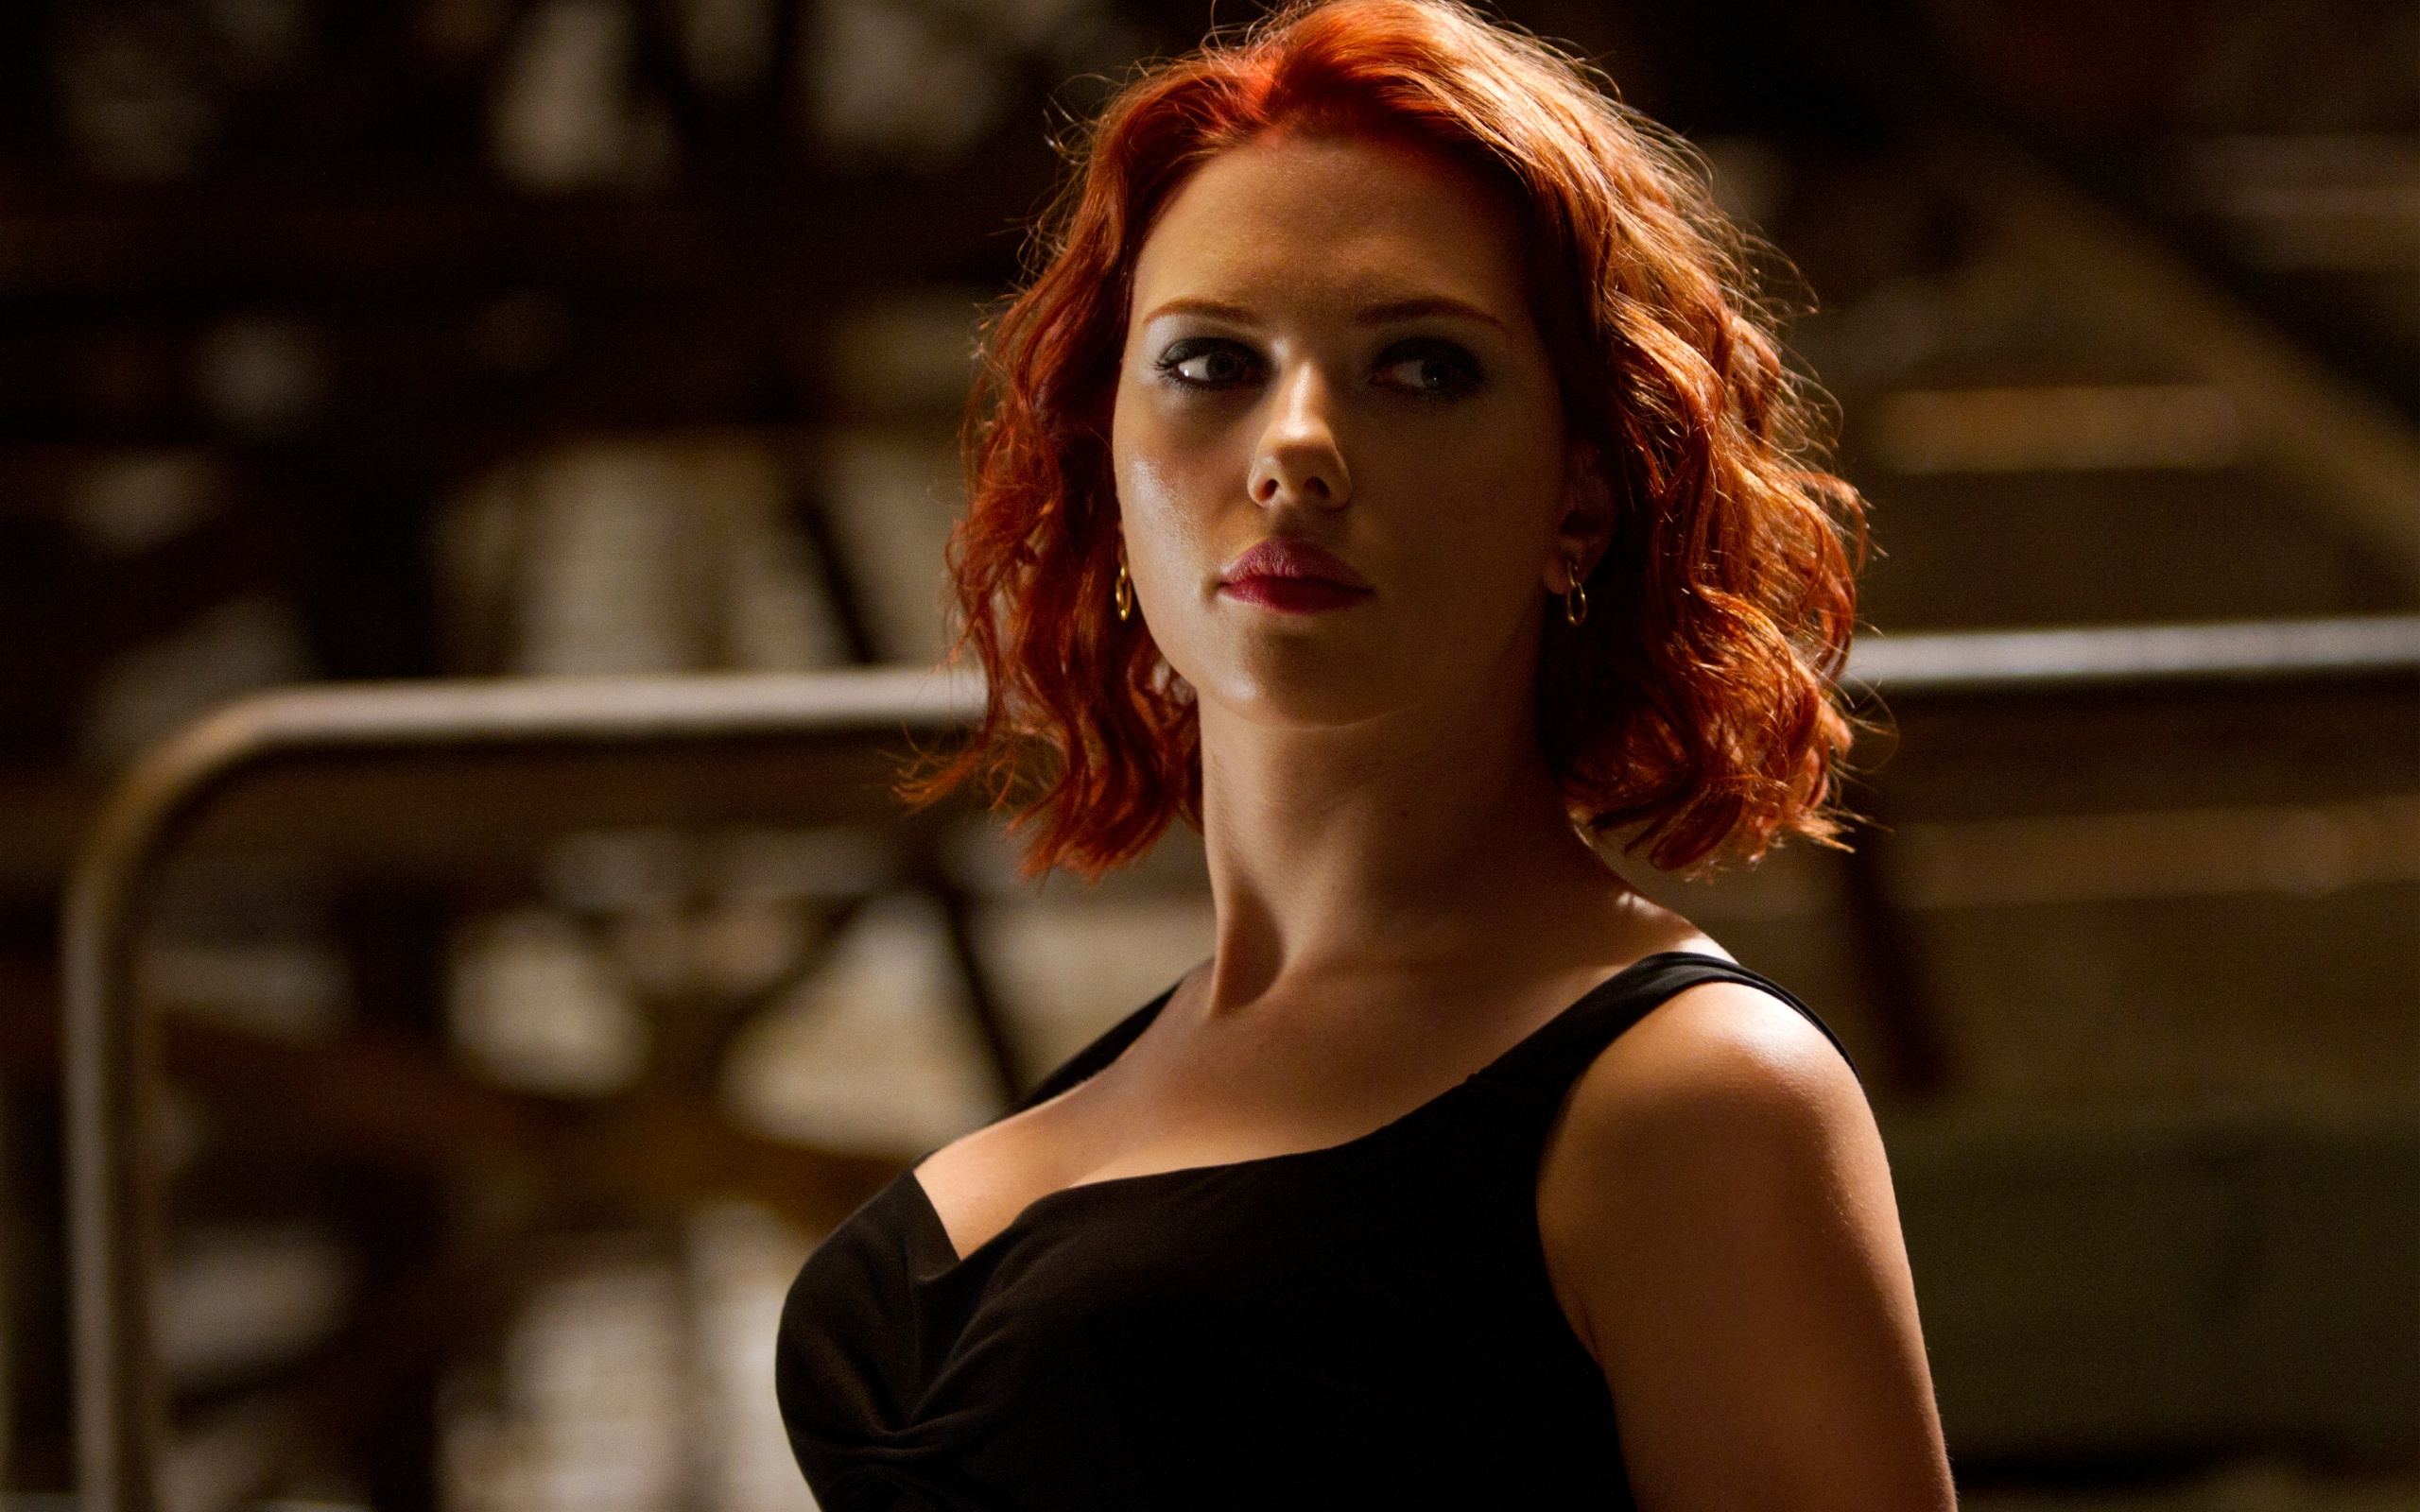 The Avengers Scarlett Johansson Wallpapers